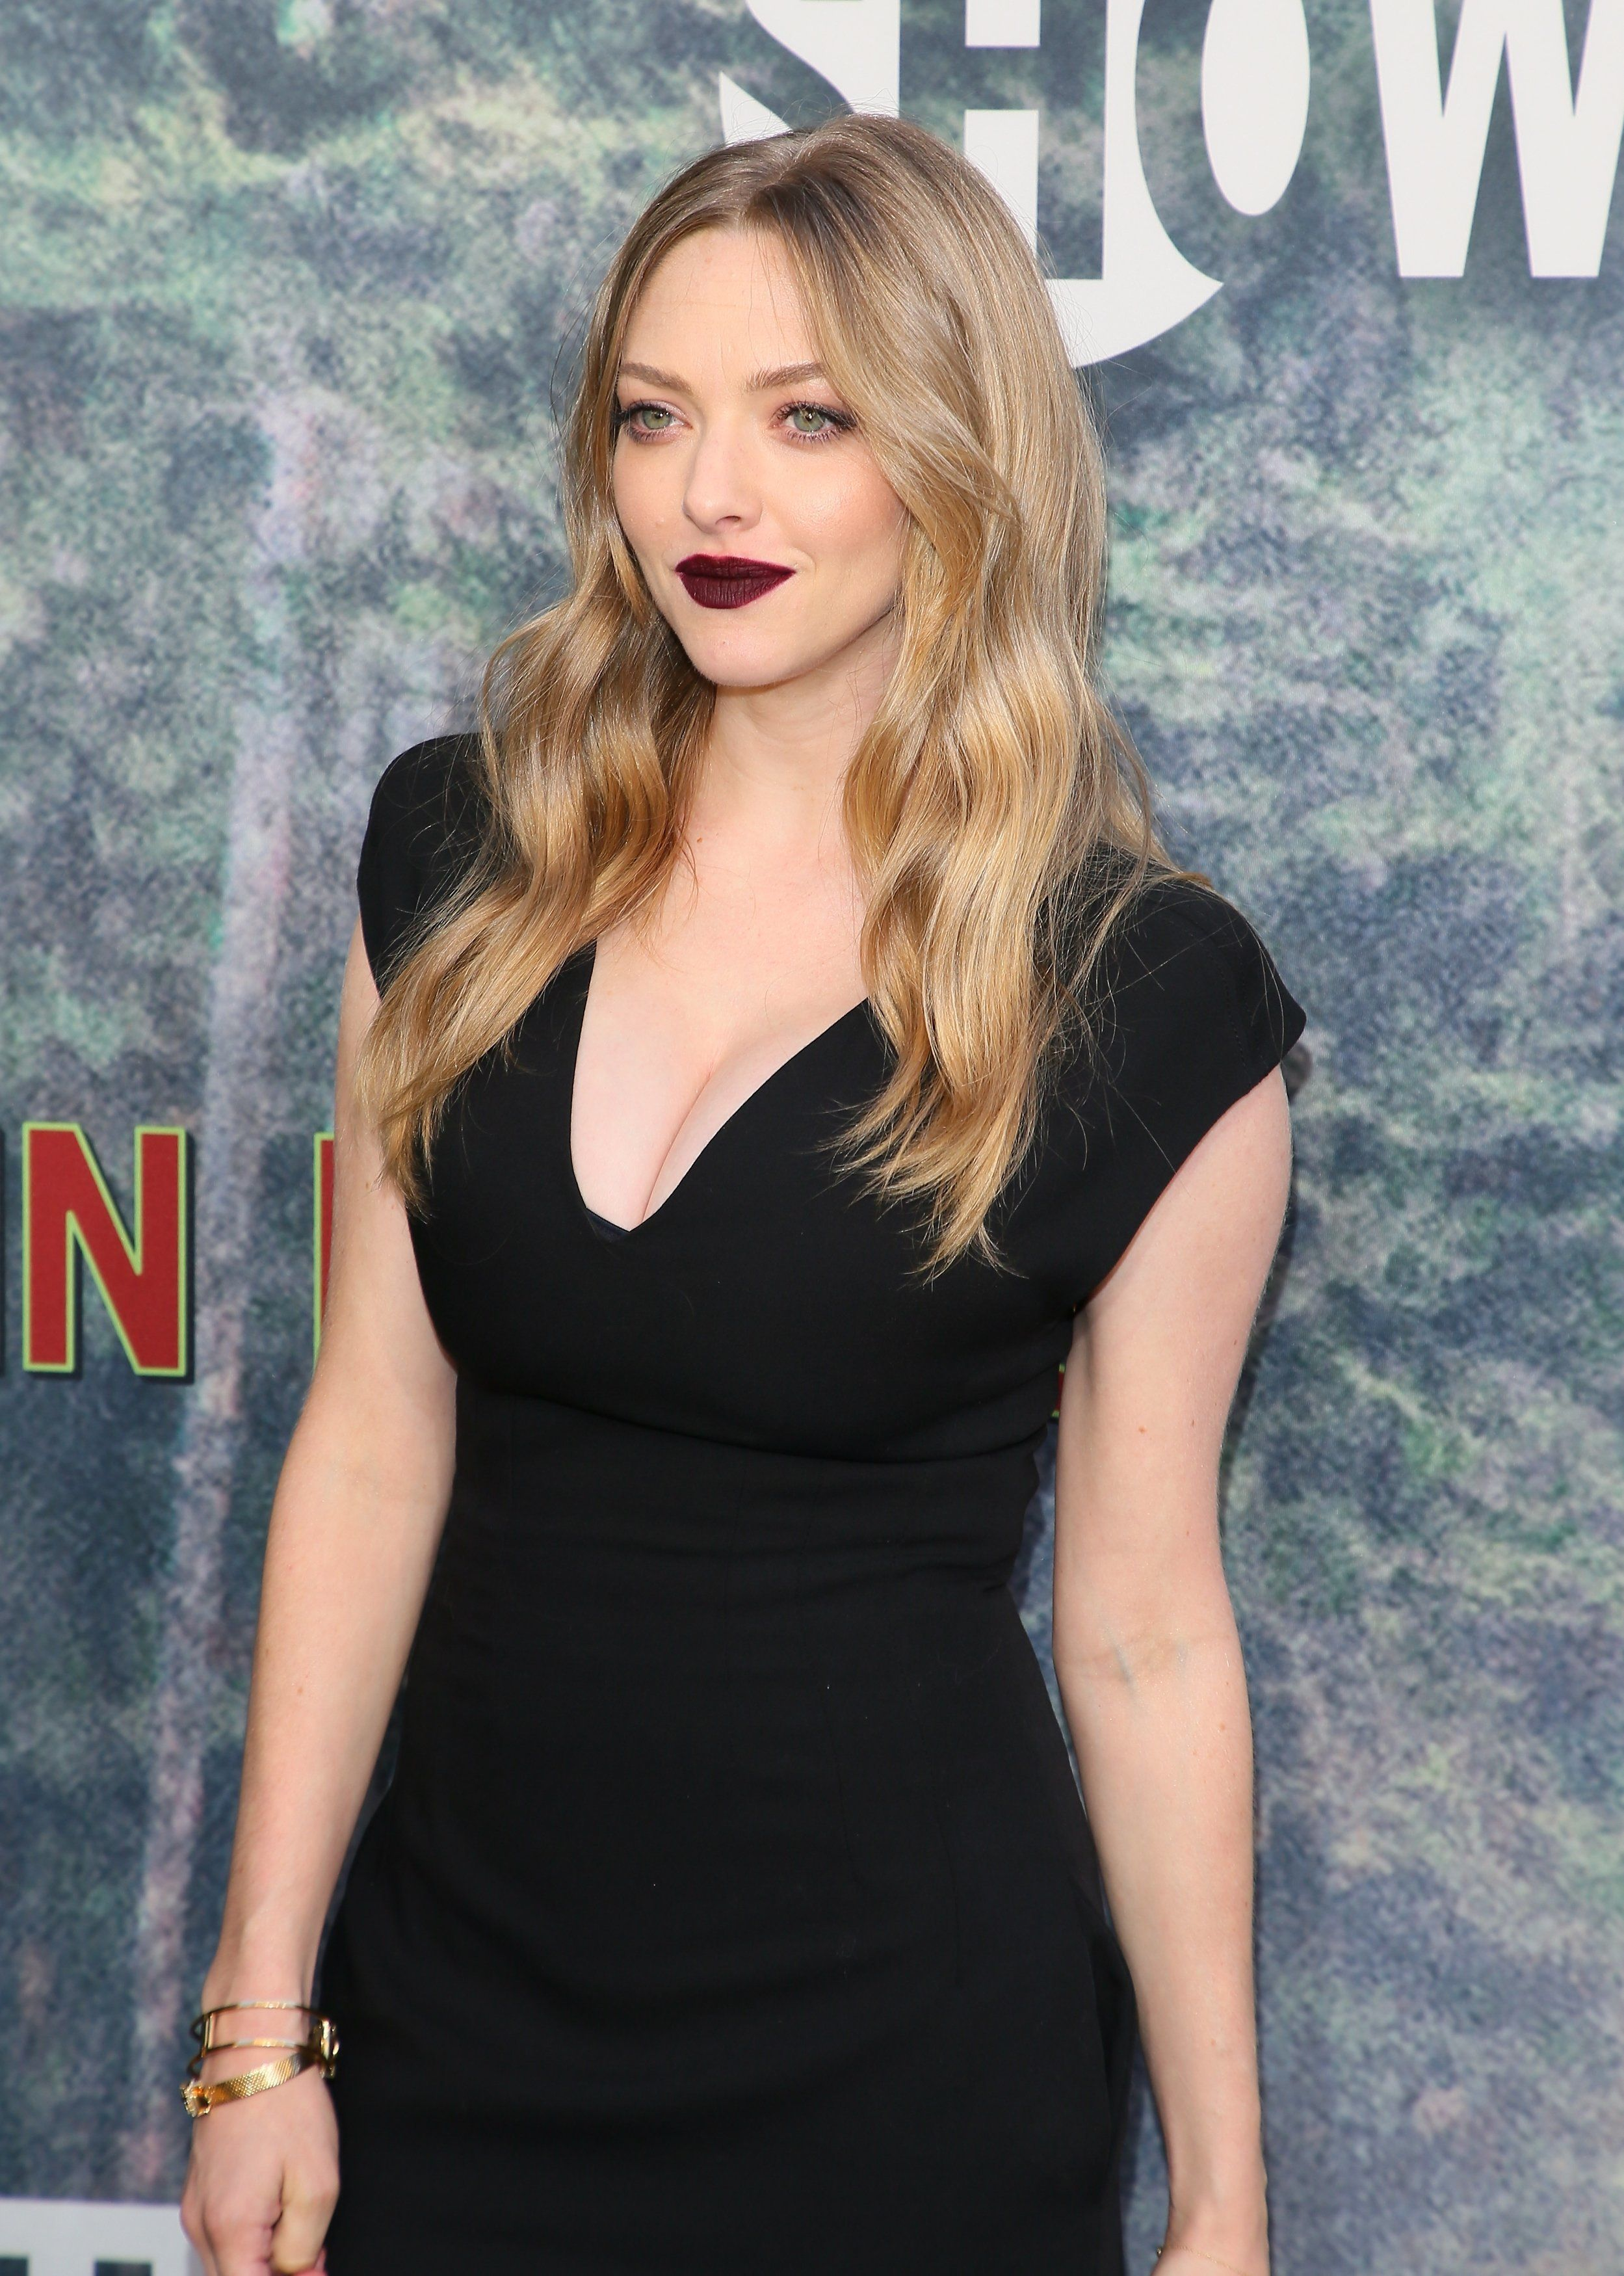 LOS ANGELES, CA - MAY 19: Amanda Seyfried attends the premiere of Showtime's 'Twin Peaks' at The Theatre at Ace Hotel on May 19, 2017 in Los Angeles, California.(Photo by JB Lacroix/WireImage)